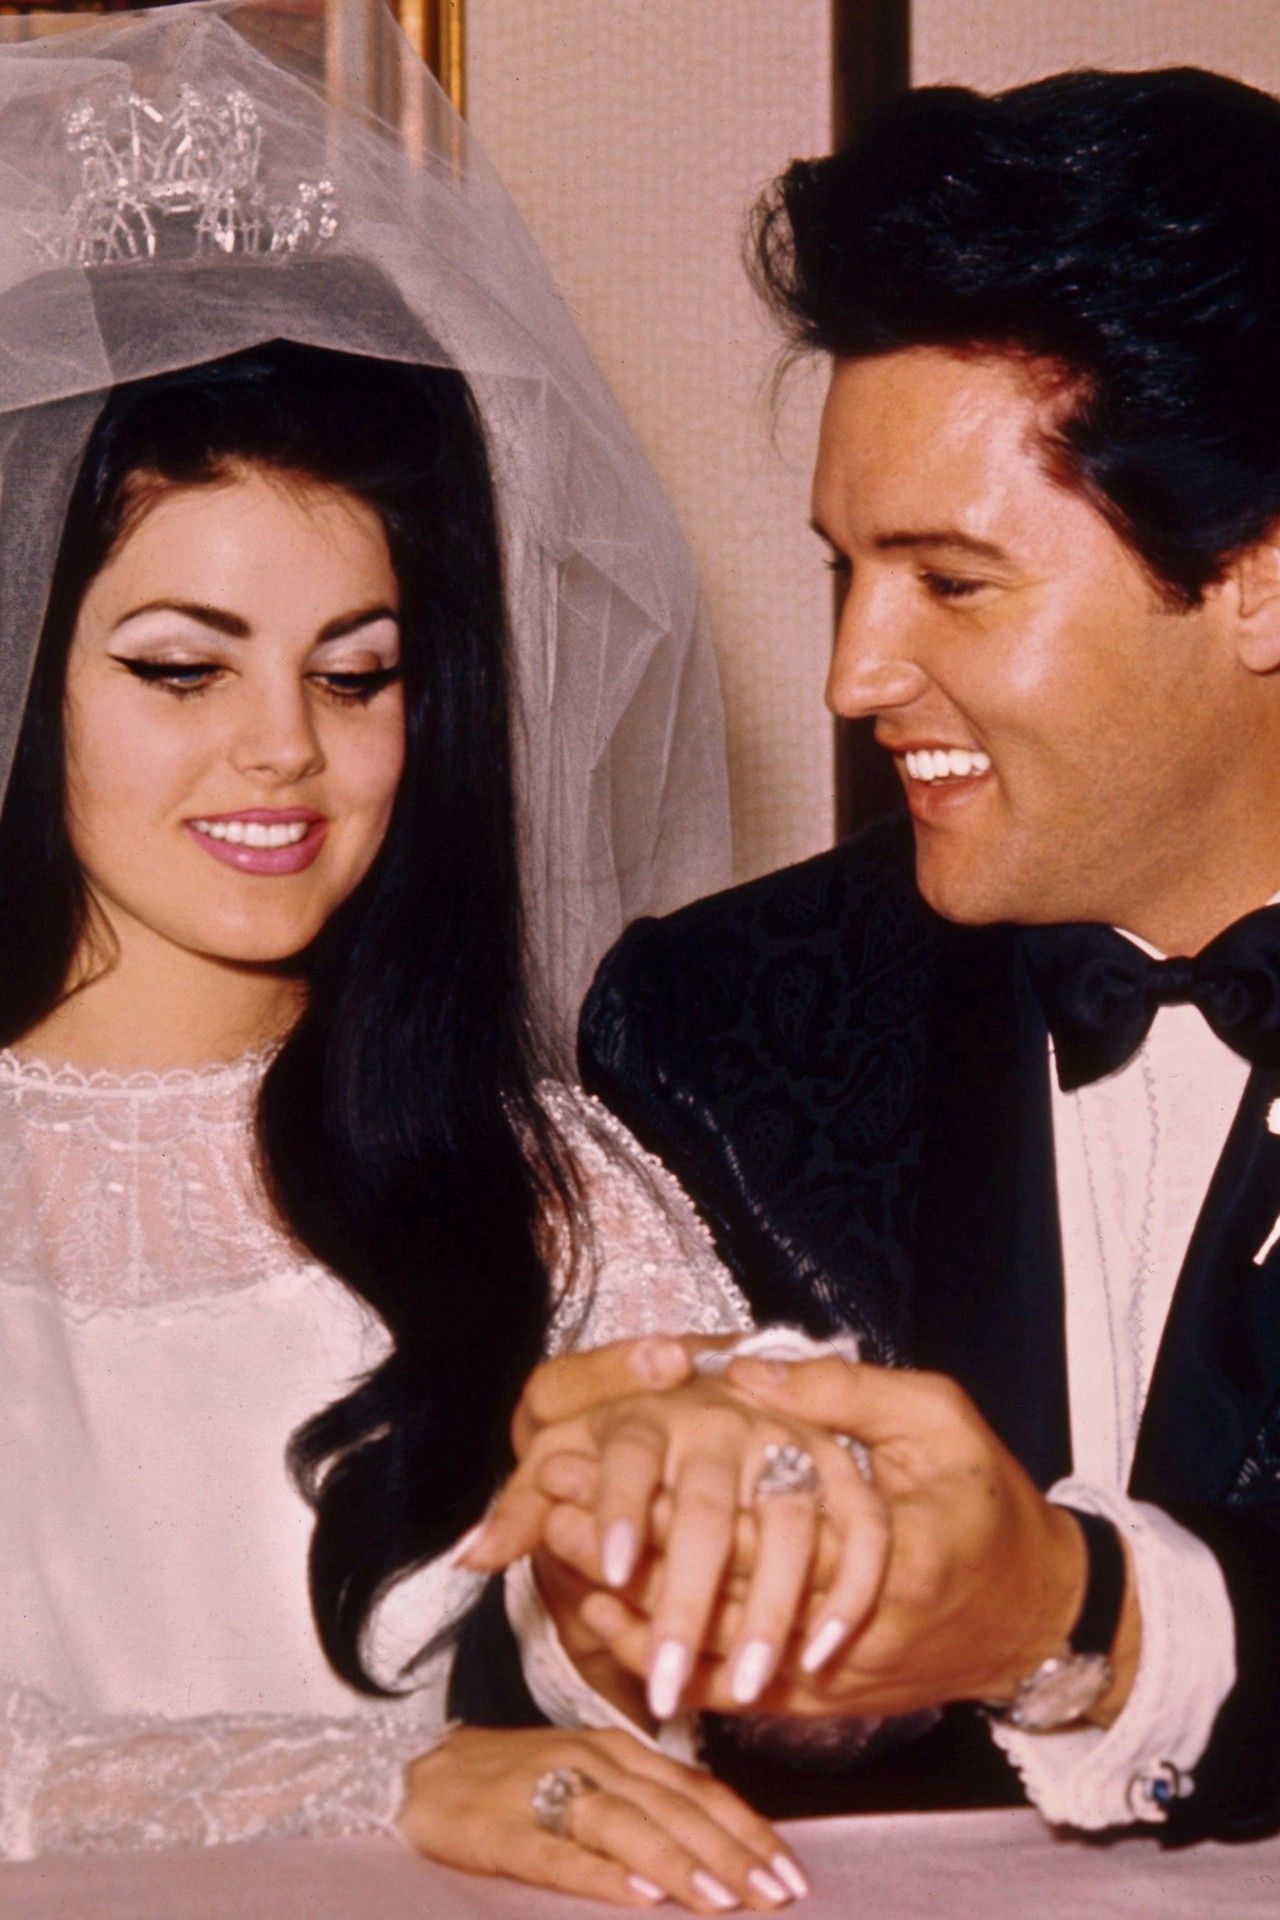 Photo of ELVIS AND PRISCILLA WEDDING DAY, MAY 1.1967.